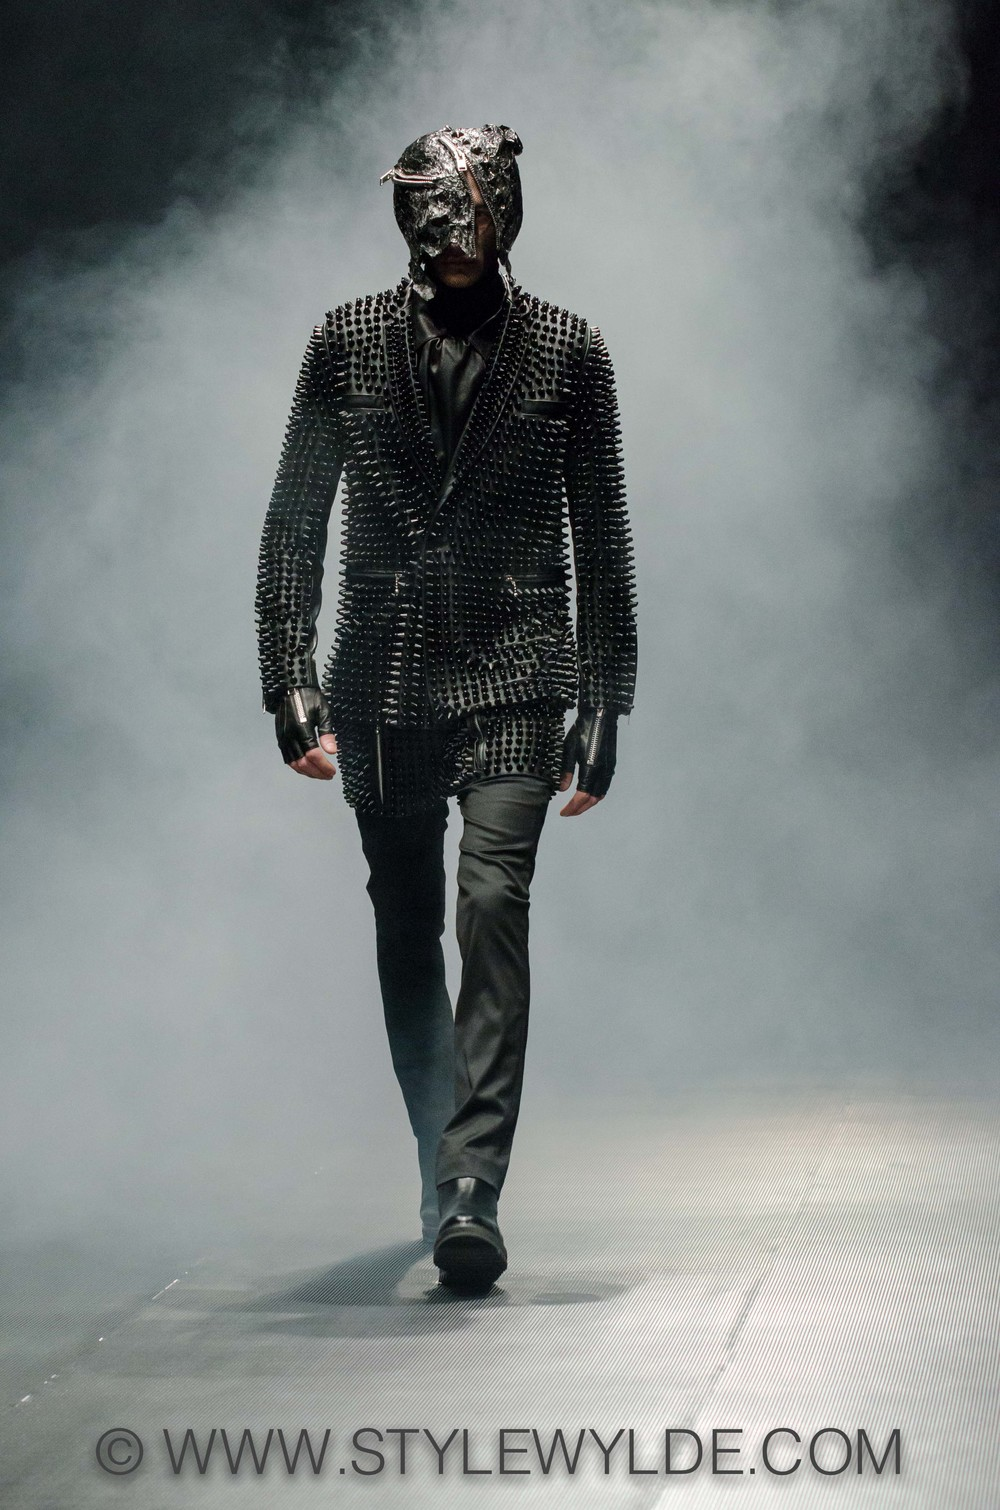 StyleWylde_99percentIS_AW14_edited (1 of 1).jpg